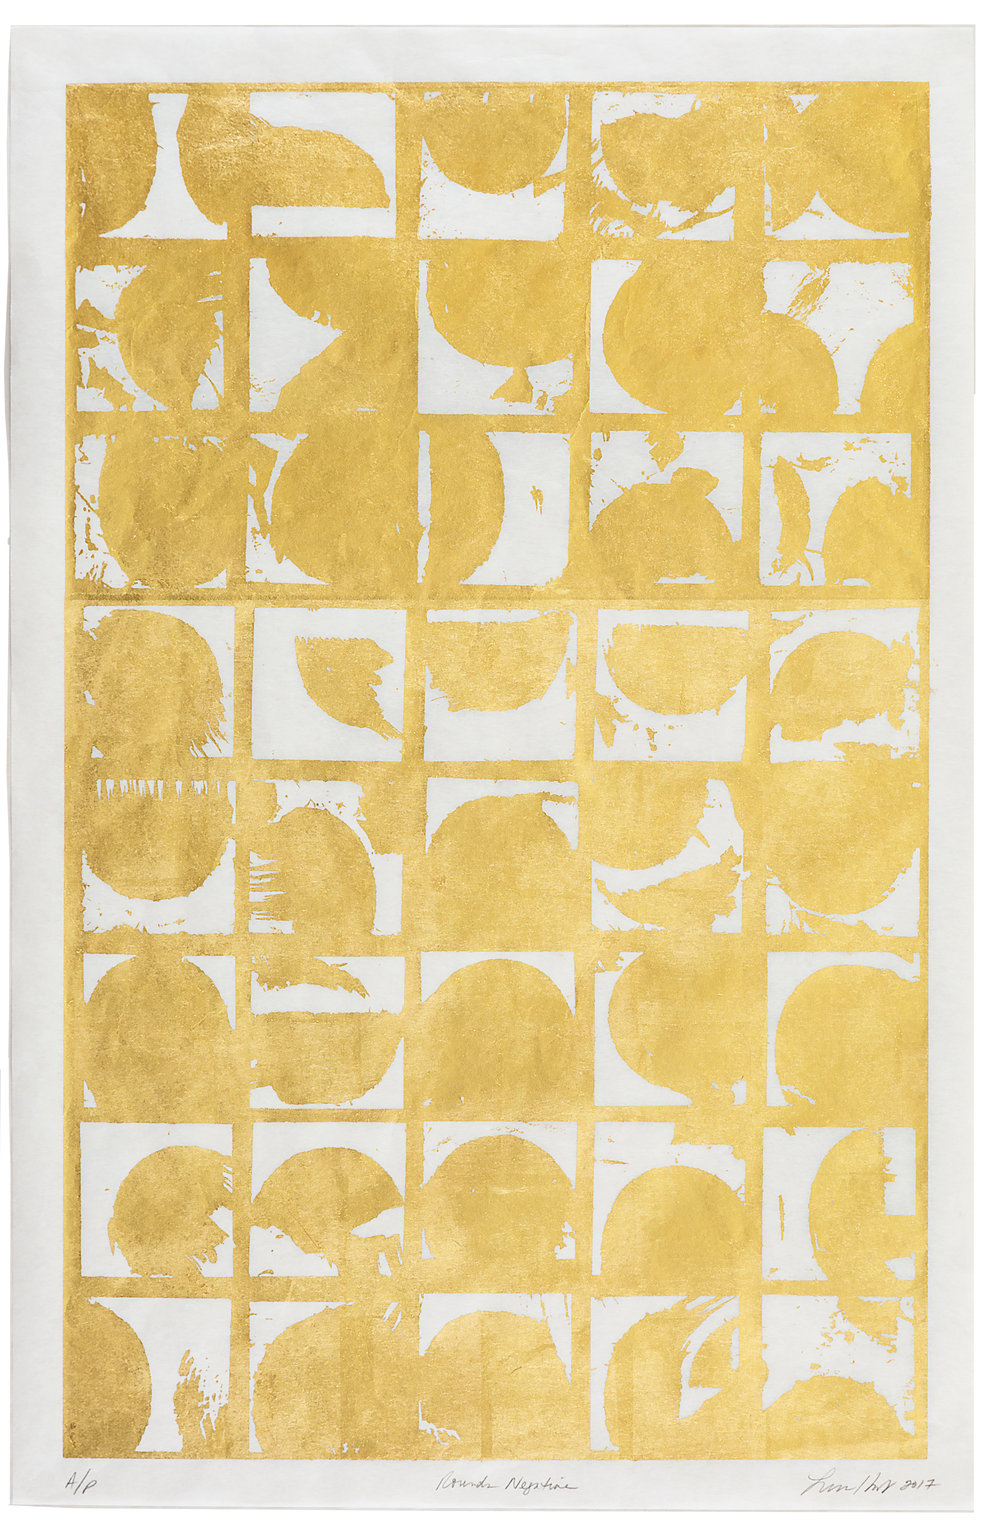 "Rounds Positive,   2017 Screen print. A/P. 24K gold leaf, Misu Rice Paper. 22"" x 32""  Inquire"